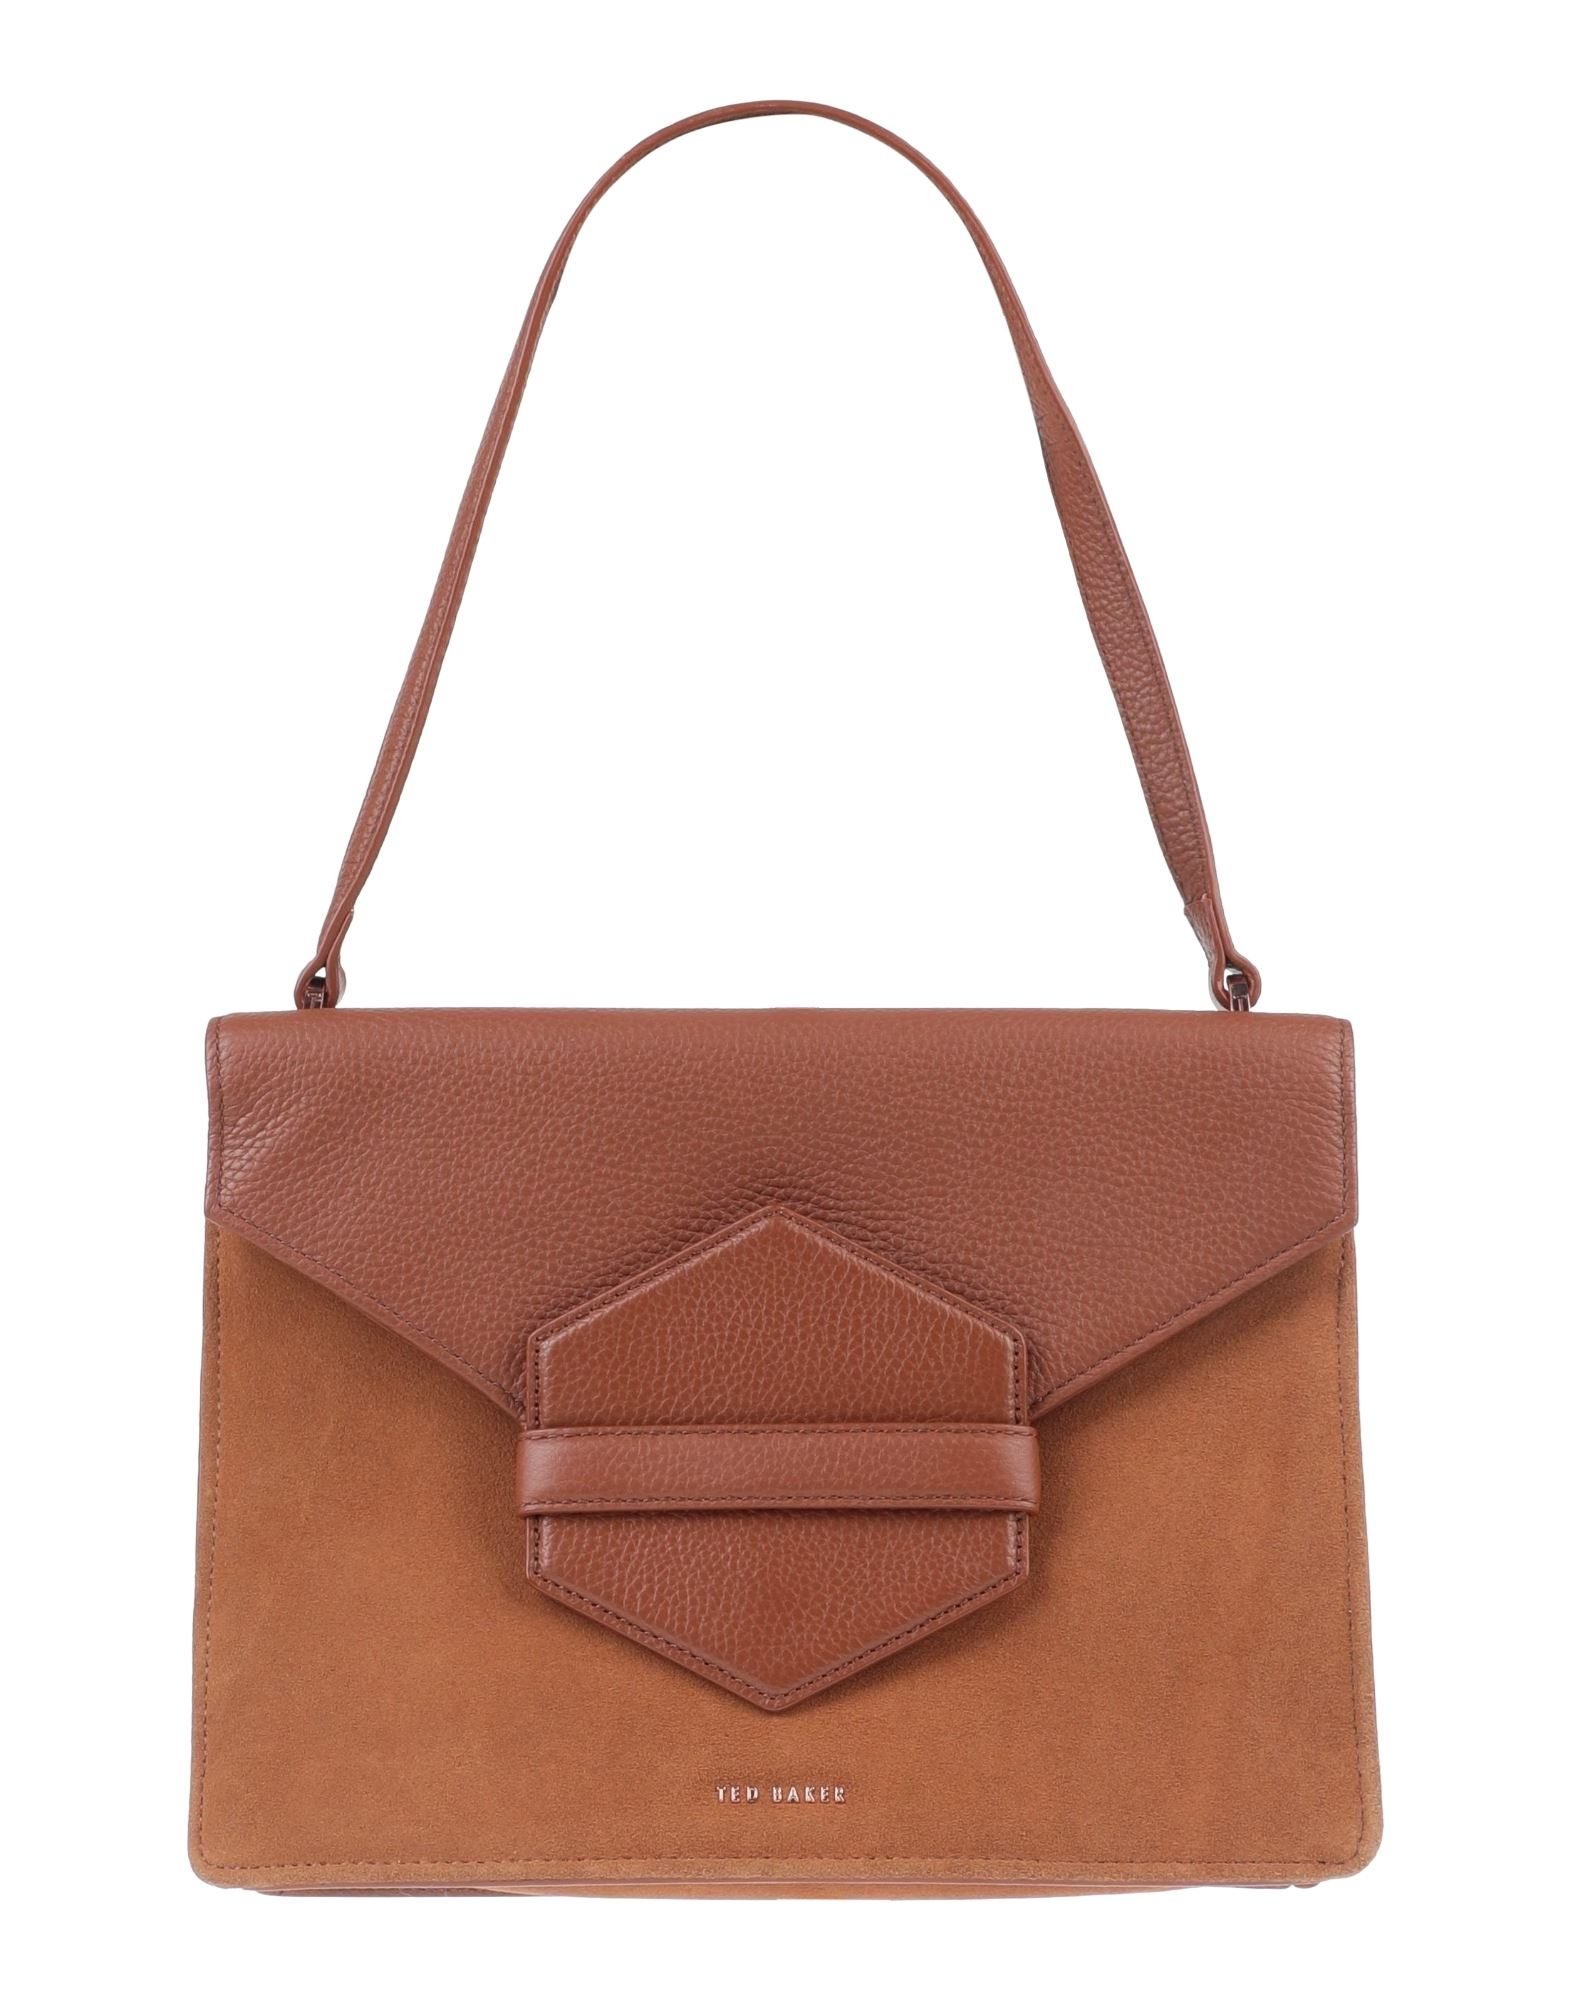 TED BAKER Handbags - Item 45551035